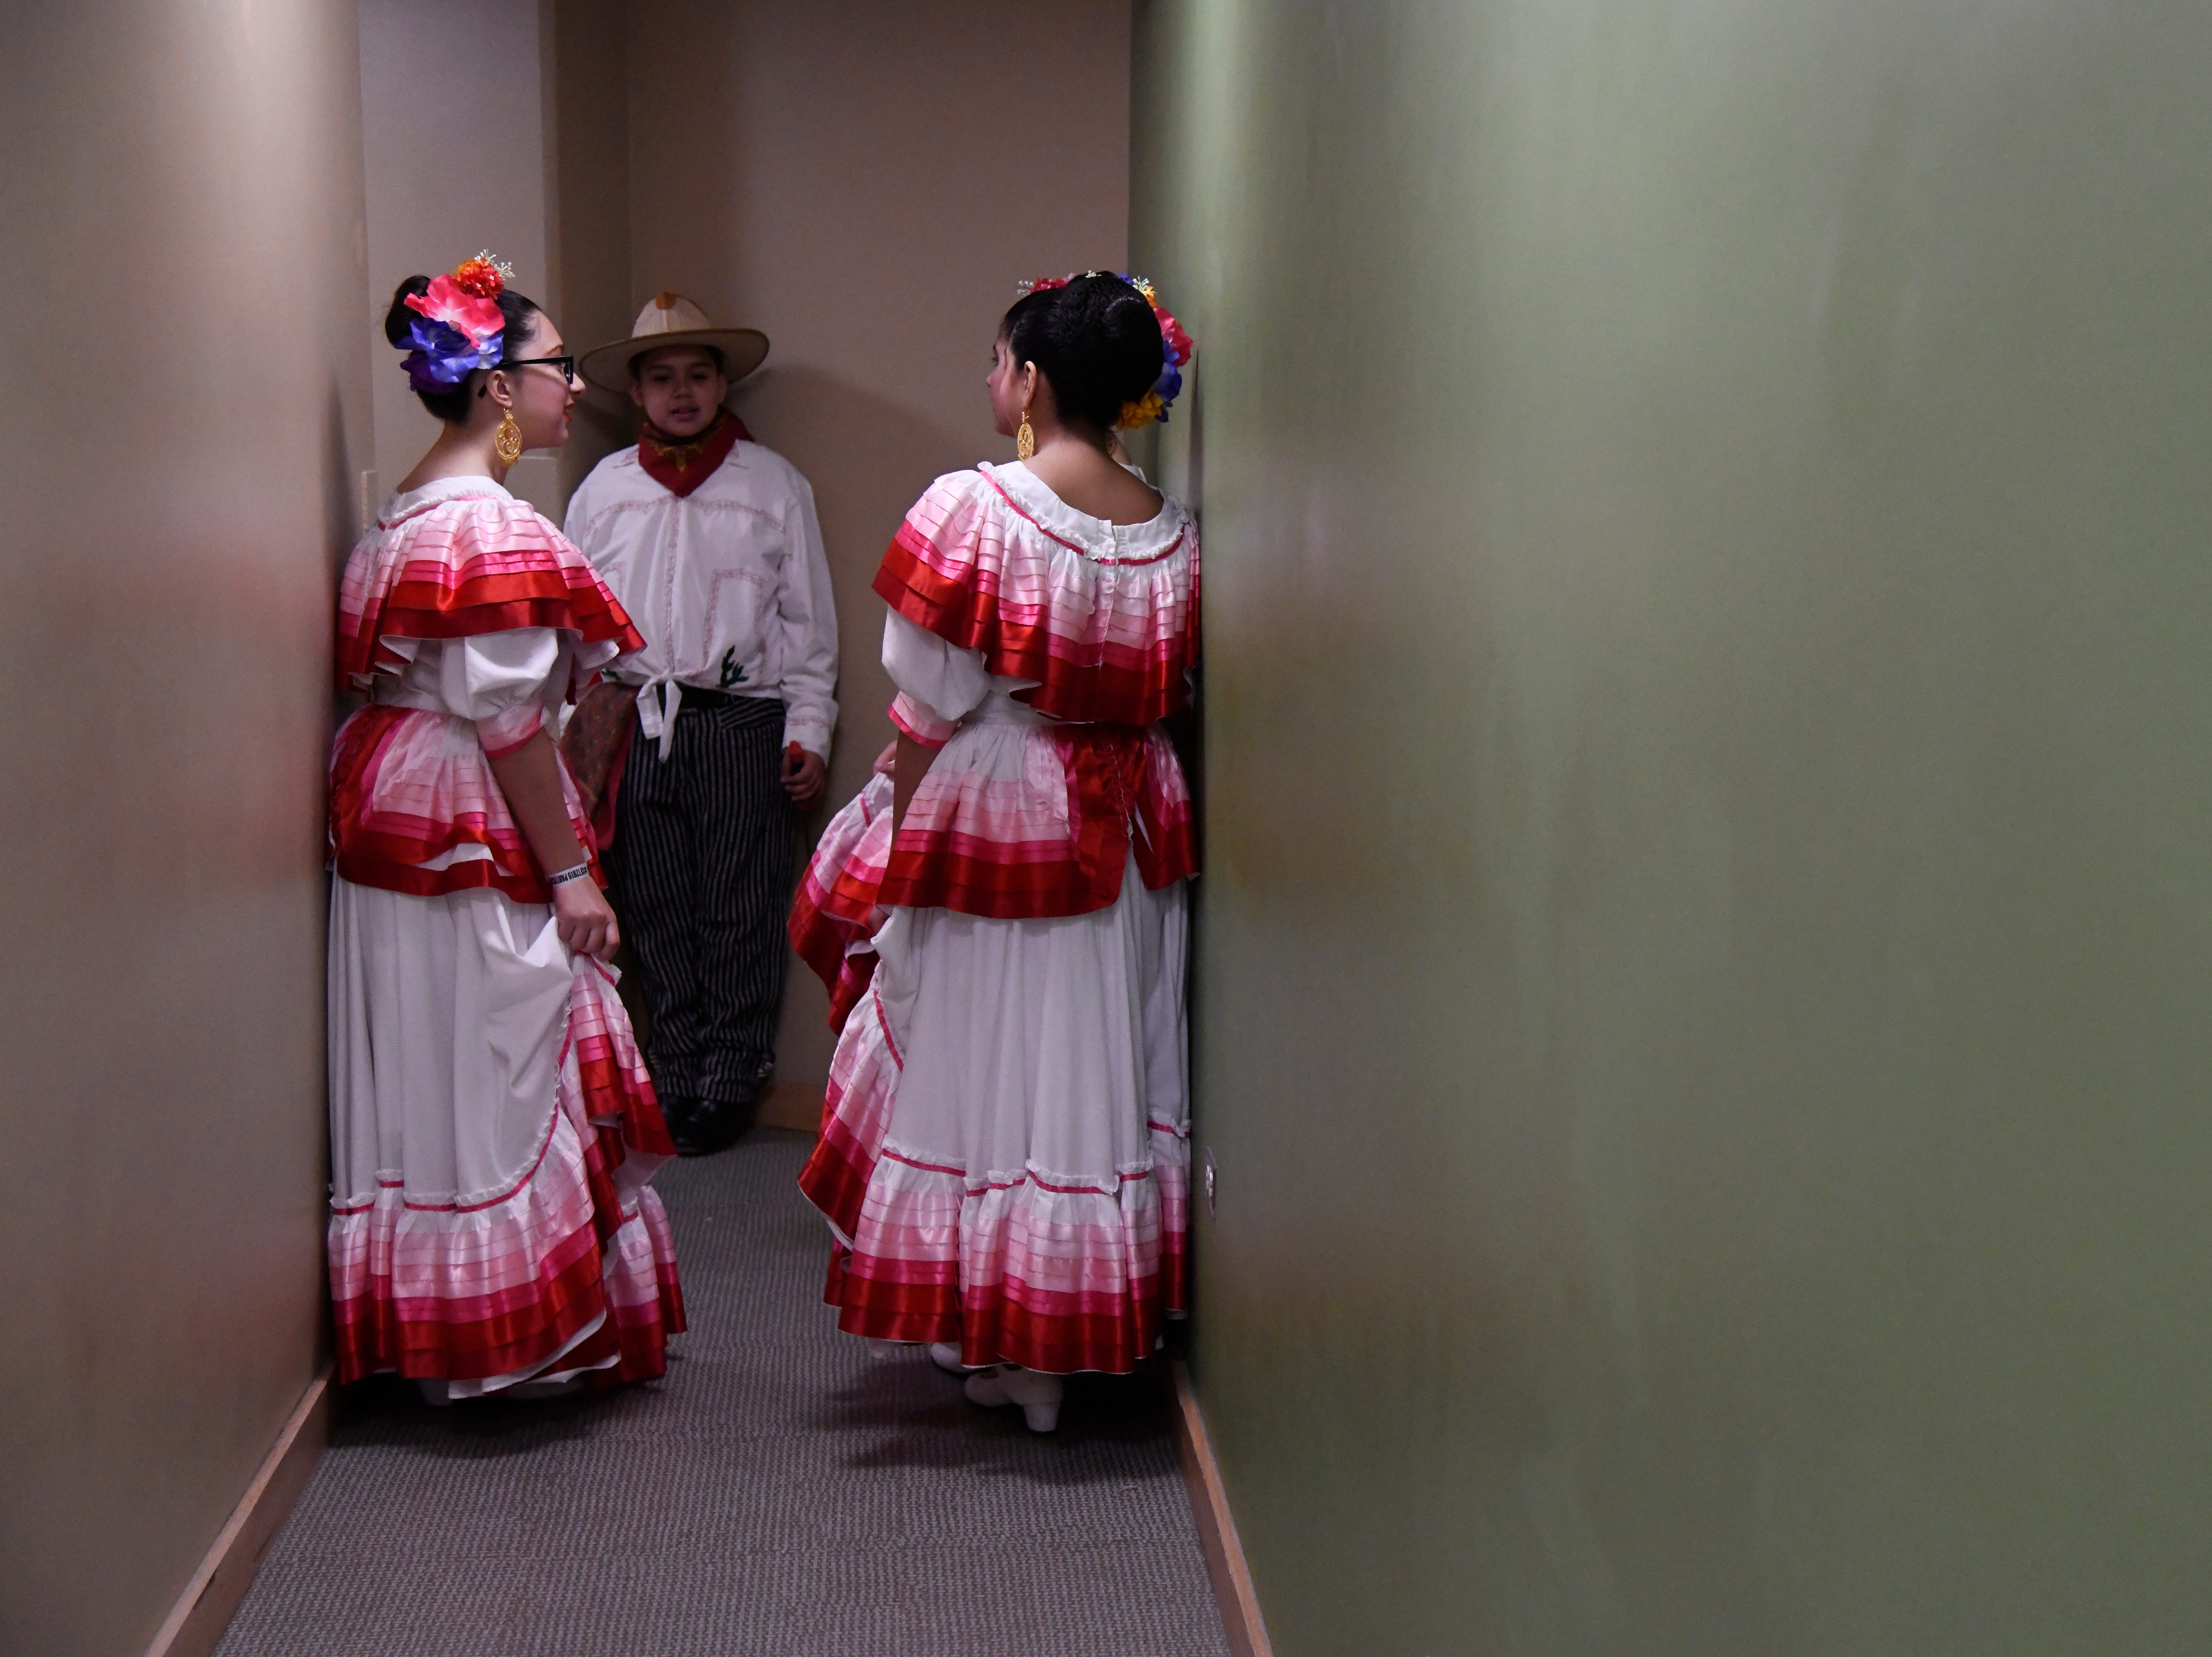 Folklorica dancers wait backstage at the Selena Auditorium, Saturday, March 23, 2019. Dancers from across the country and Mexico competed.